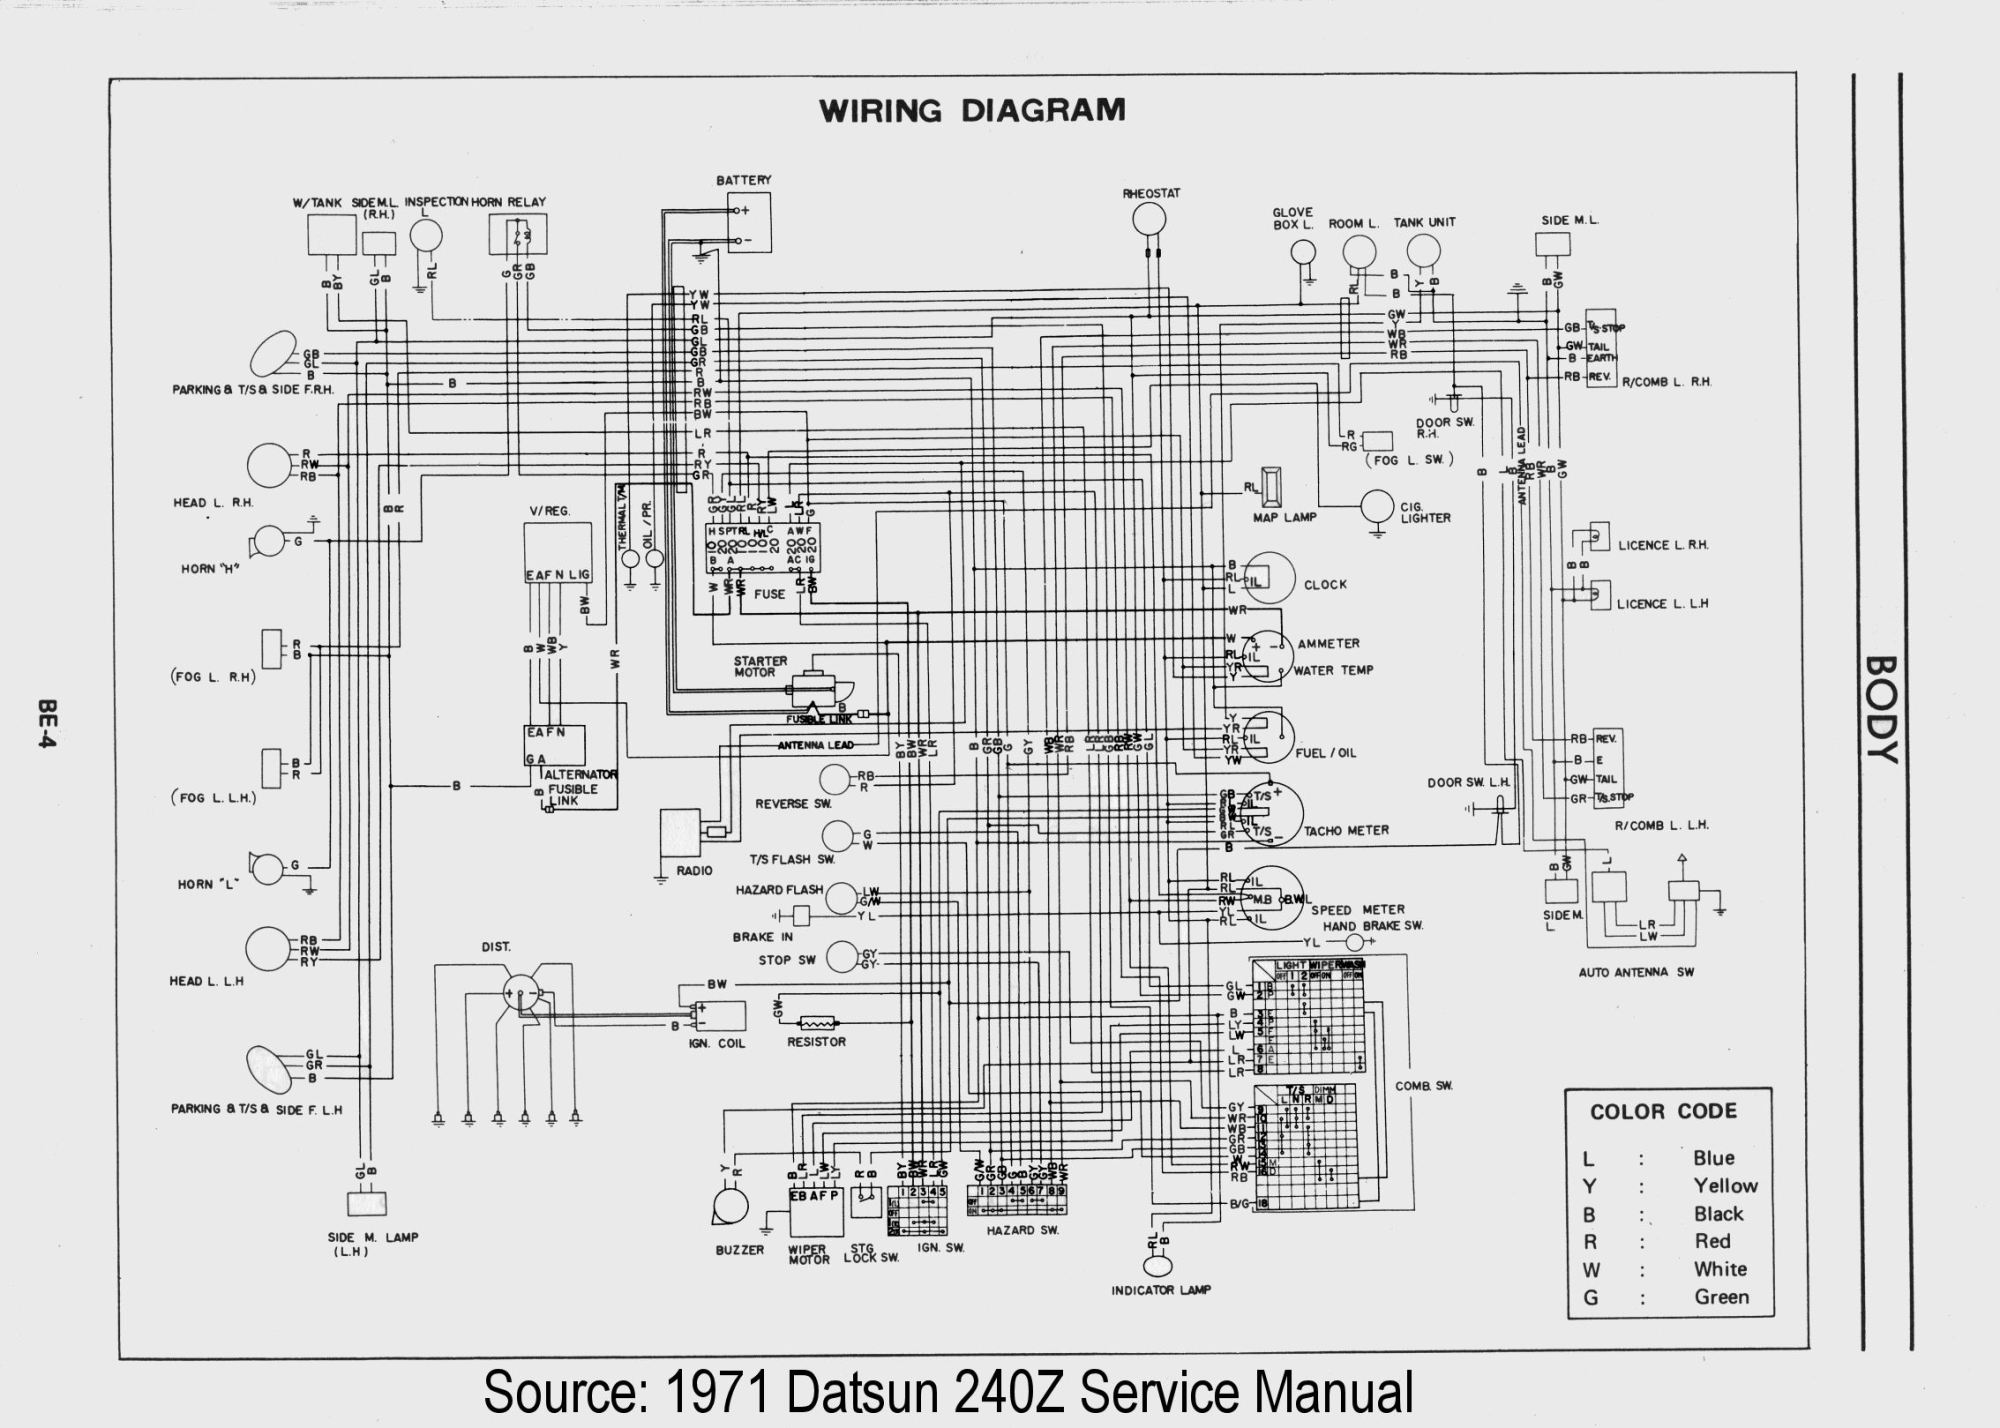 hight resolution of 1987 nissan 300zx door diagram wiring schematic wiring diagram origin rh 16 10 2 darklifezine de 84 nissan 300zx alternator connections diagram 300zx turbo